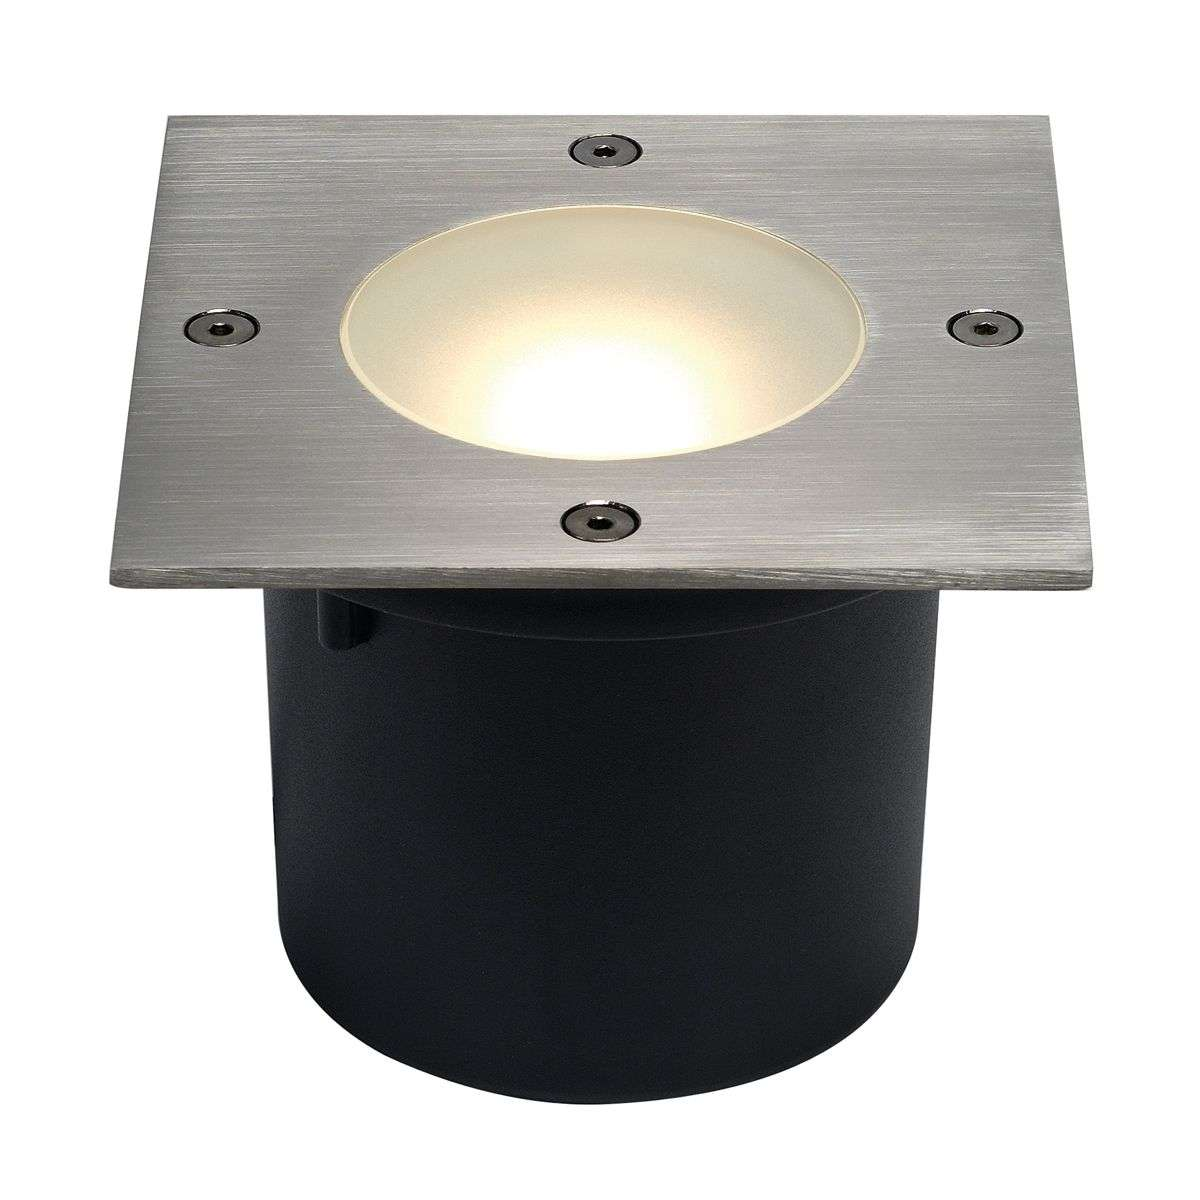 wetsy disk led in ground spot square. Black Bedroom Furniture Sets. Home Design Ideas